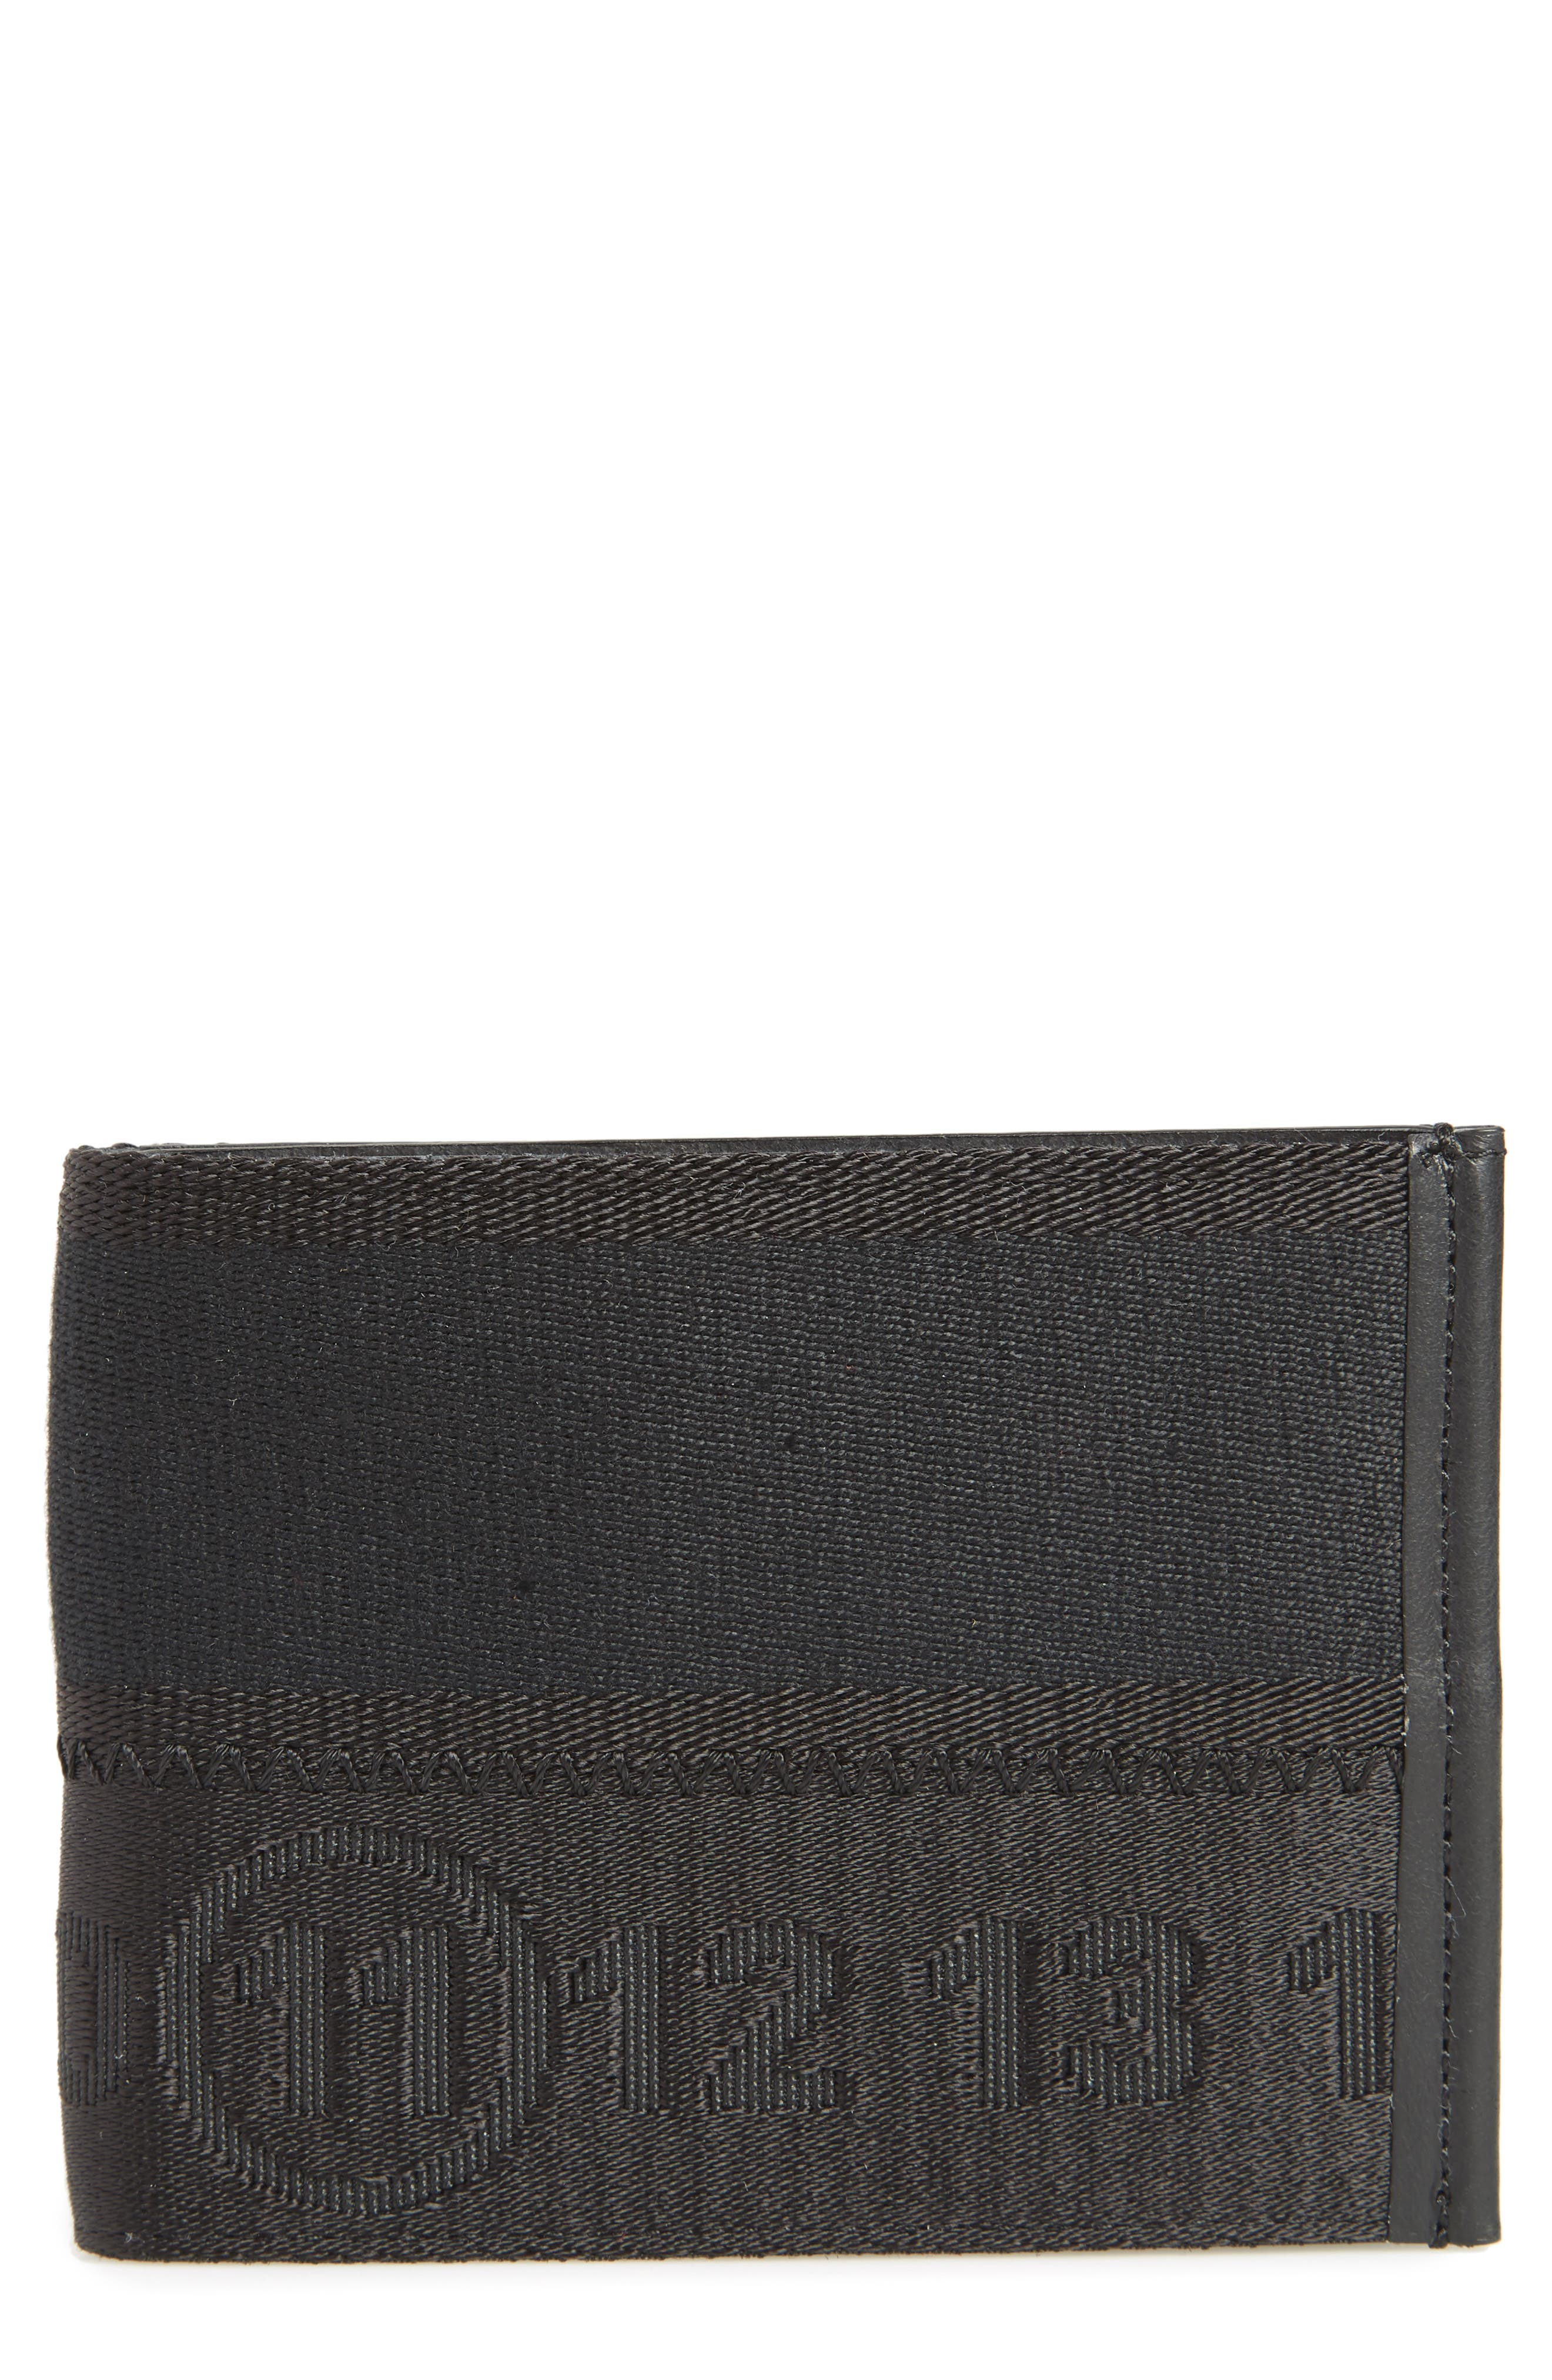 Leather Card Case,                         Main,                         color, Black